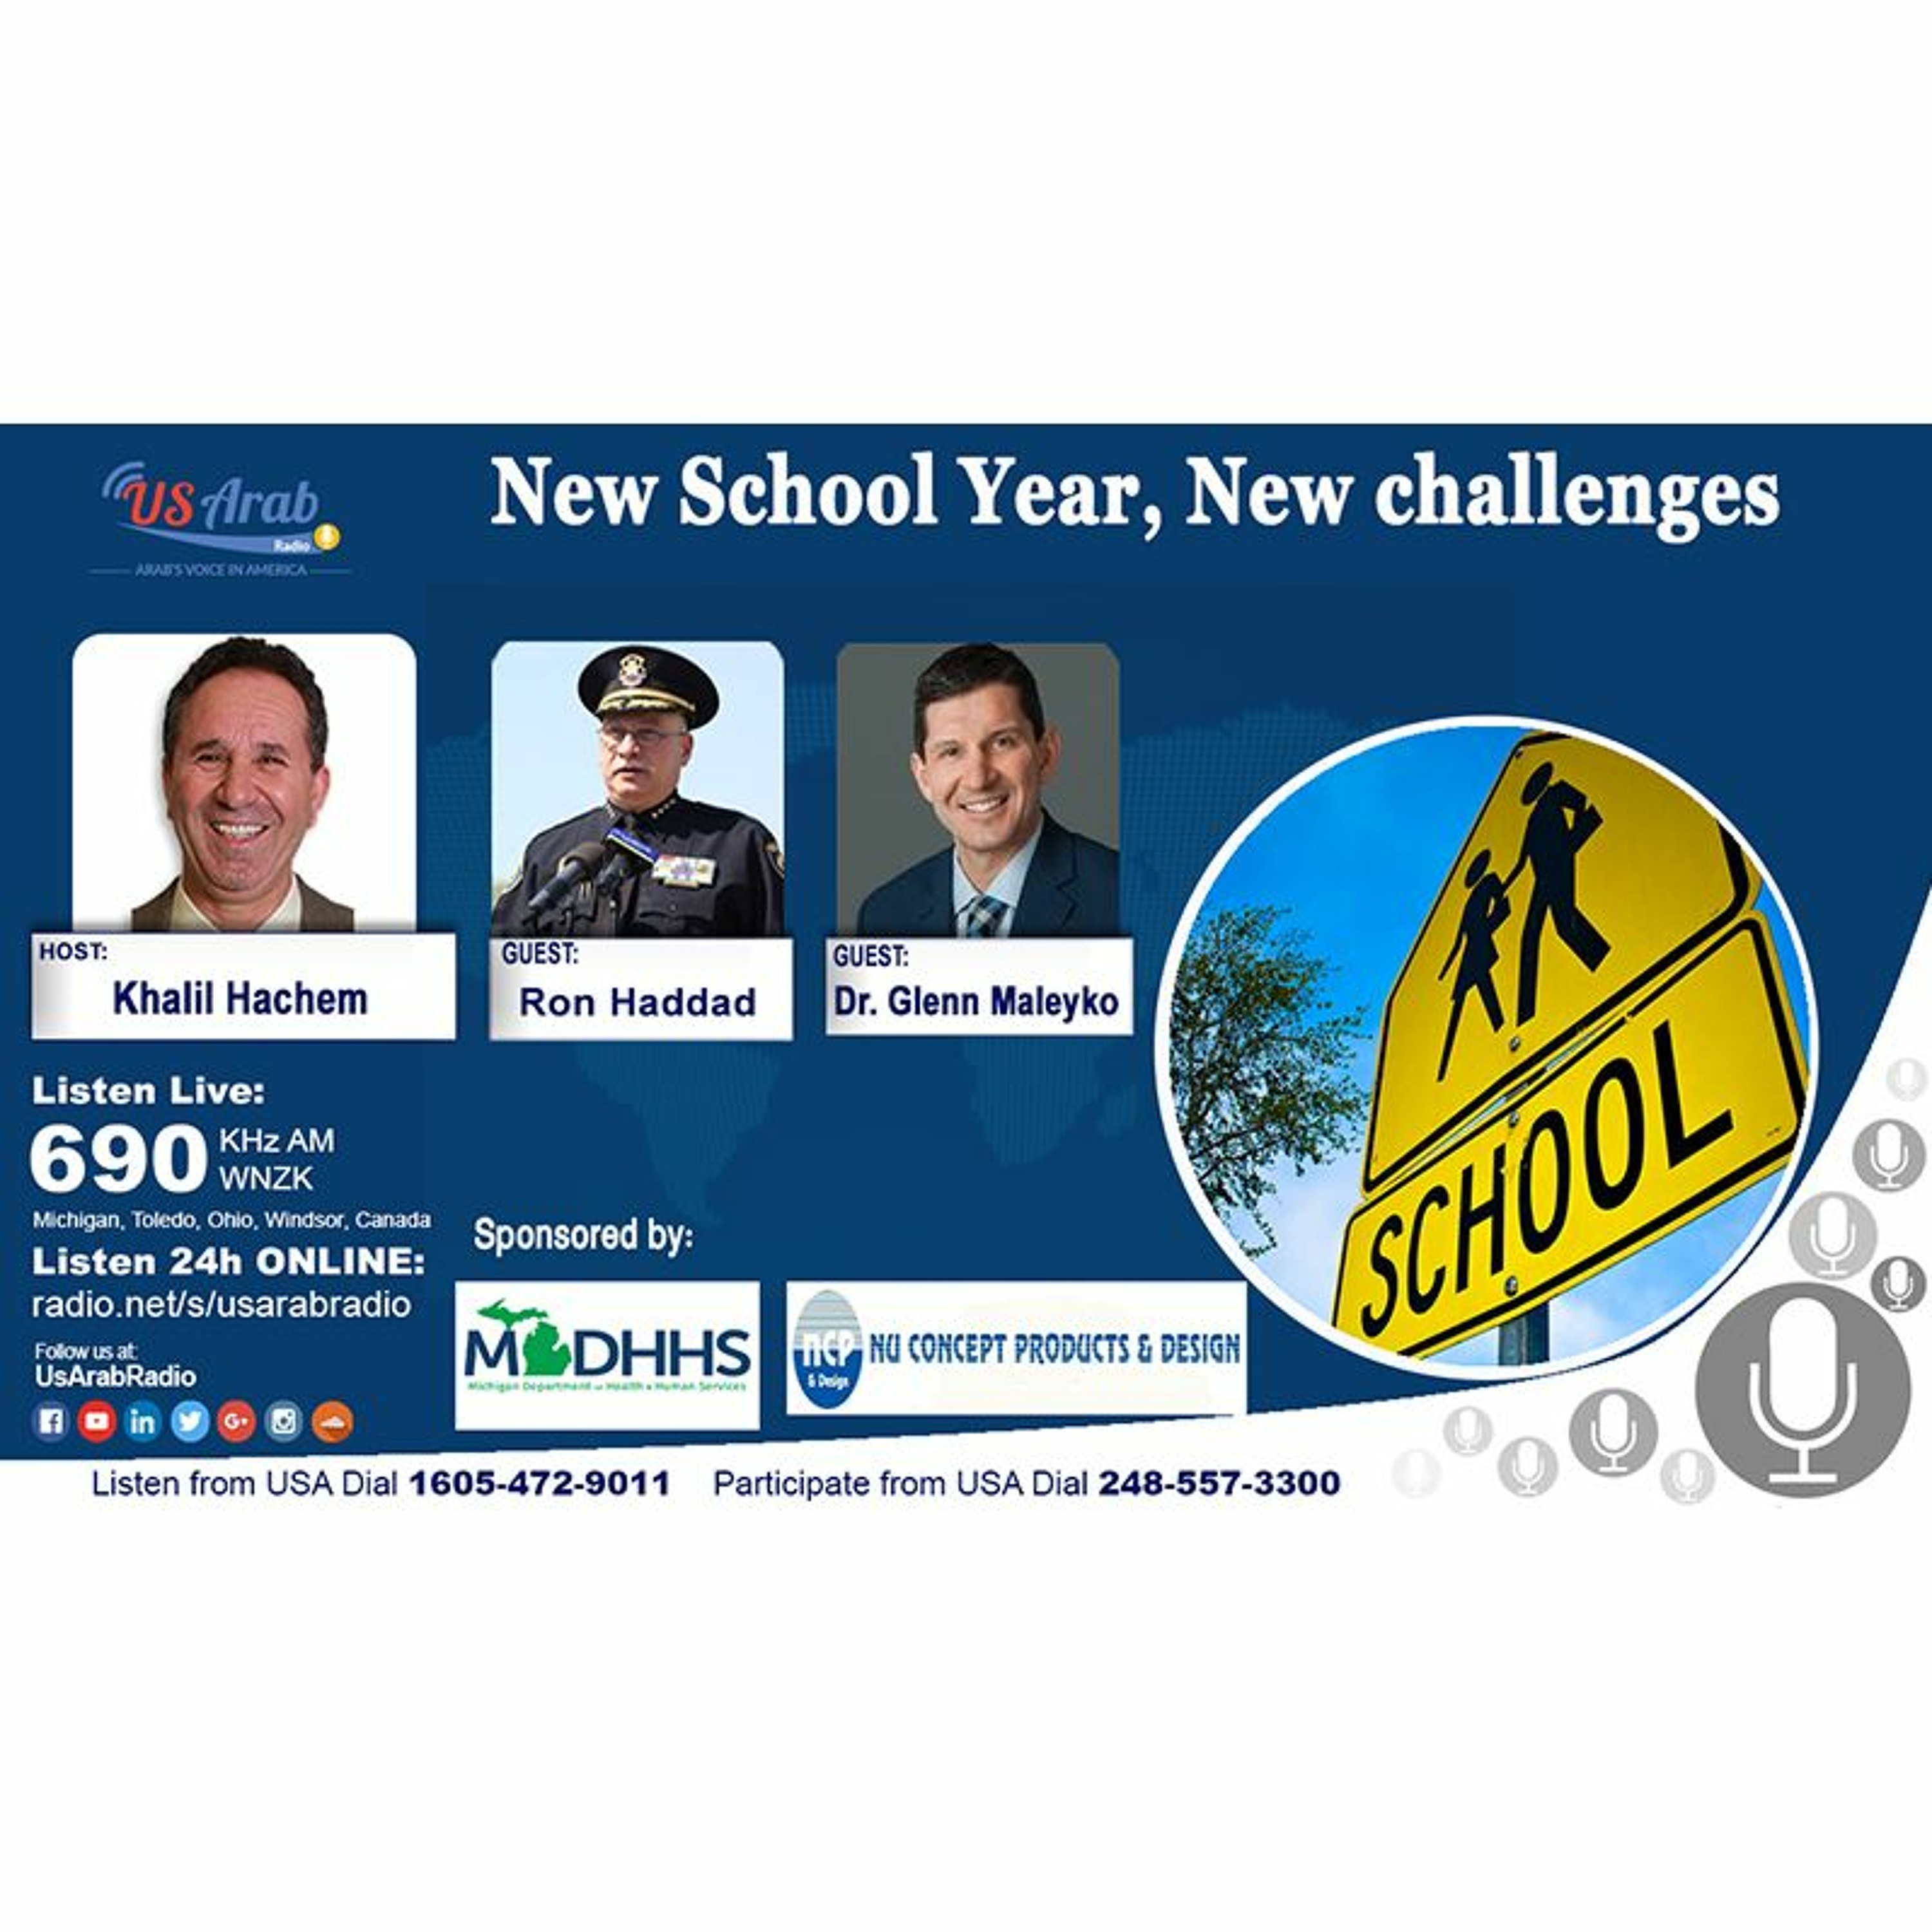 New School Year, New challenges